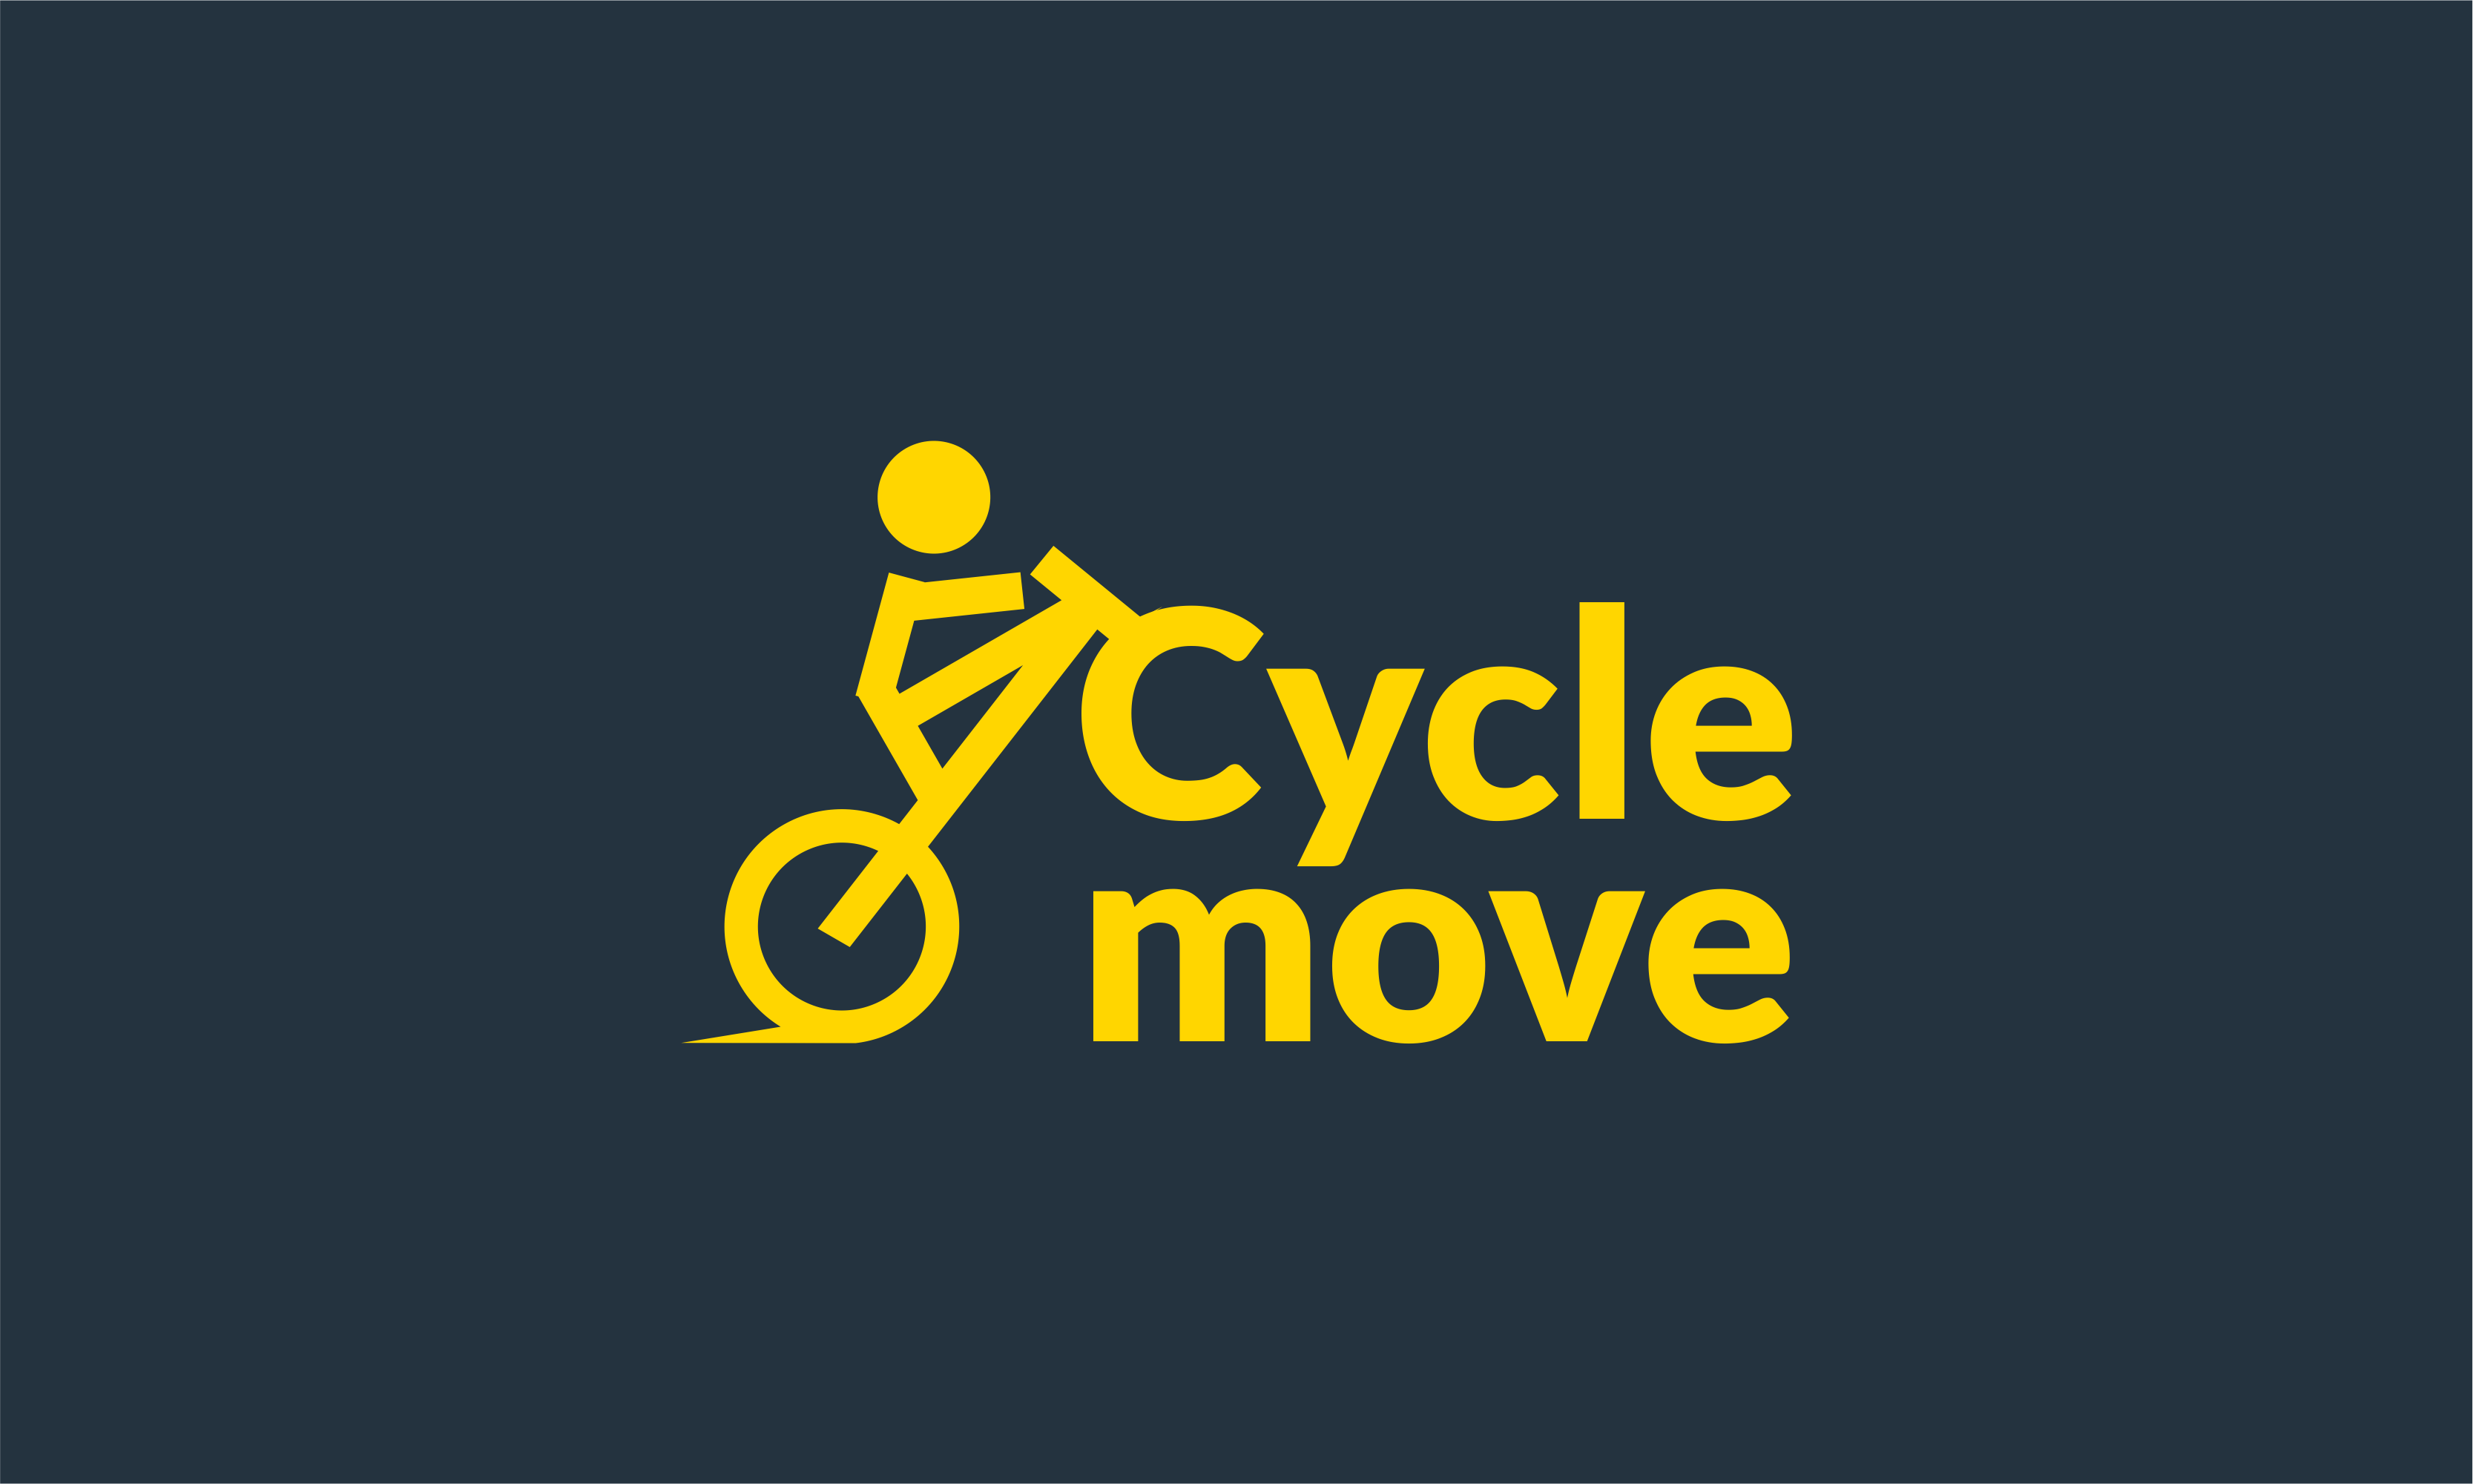 Cyclemove